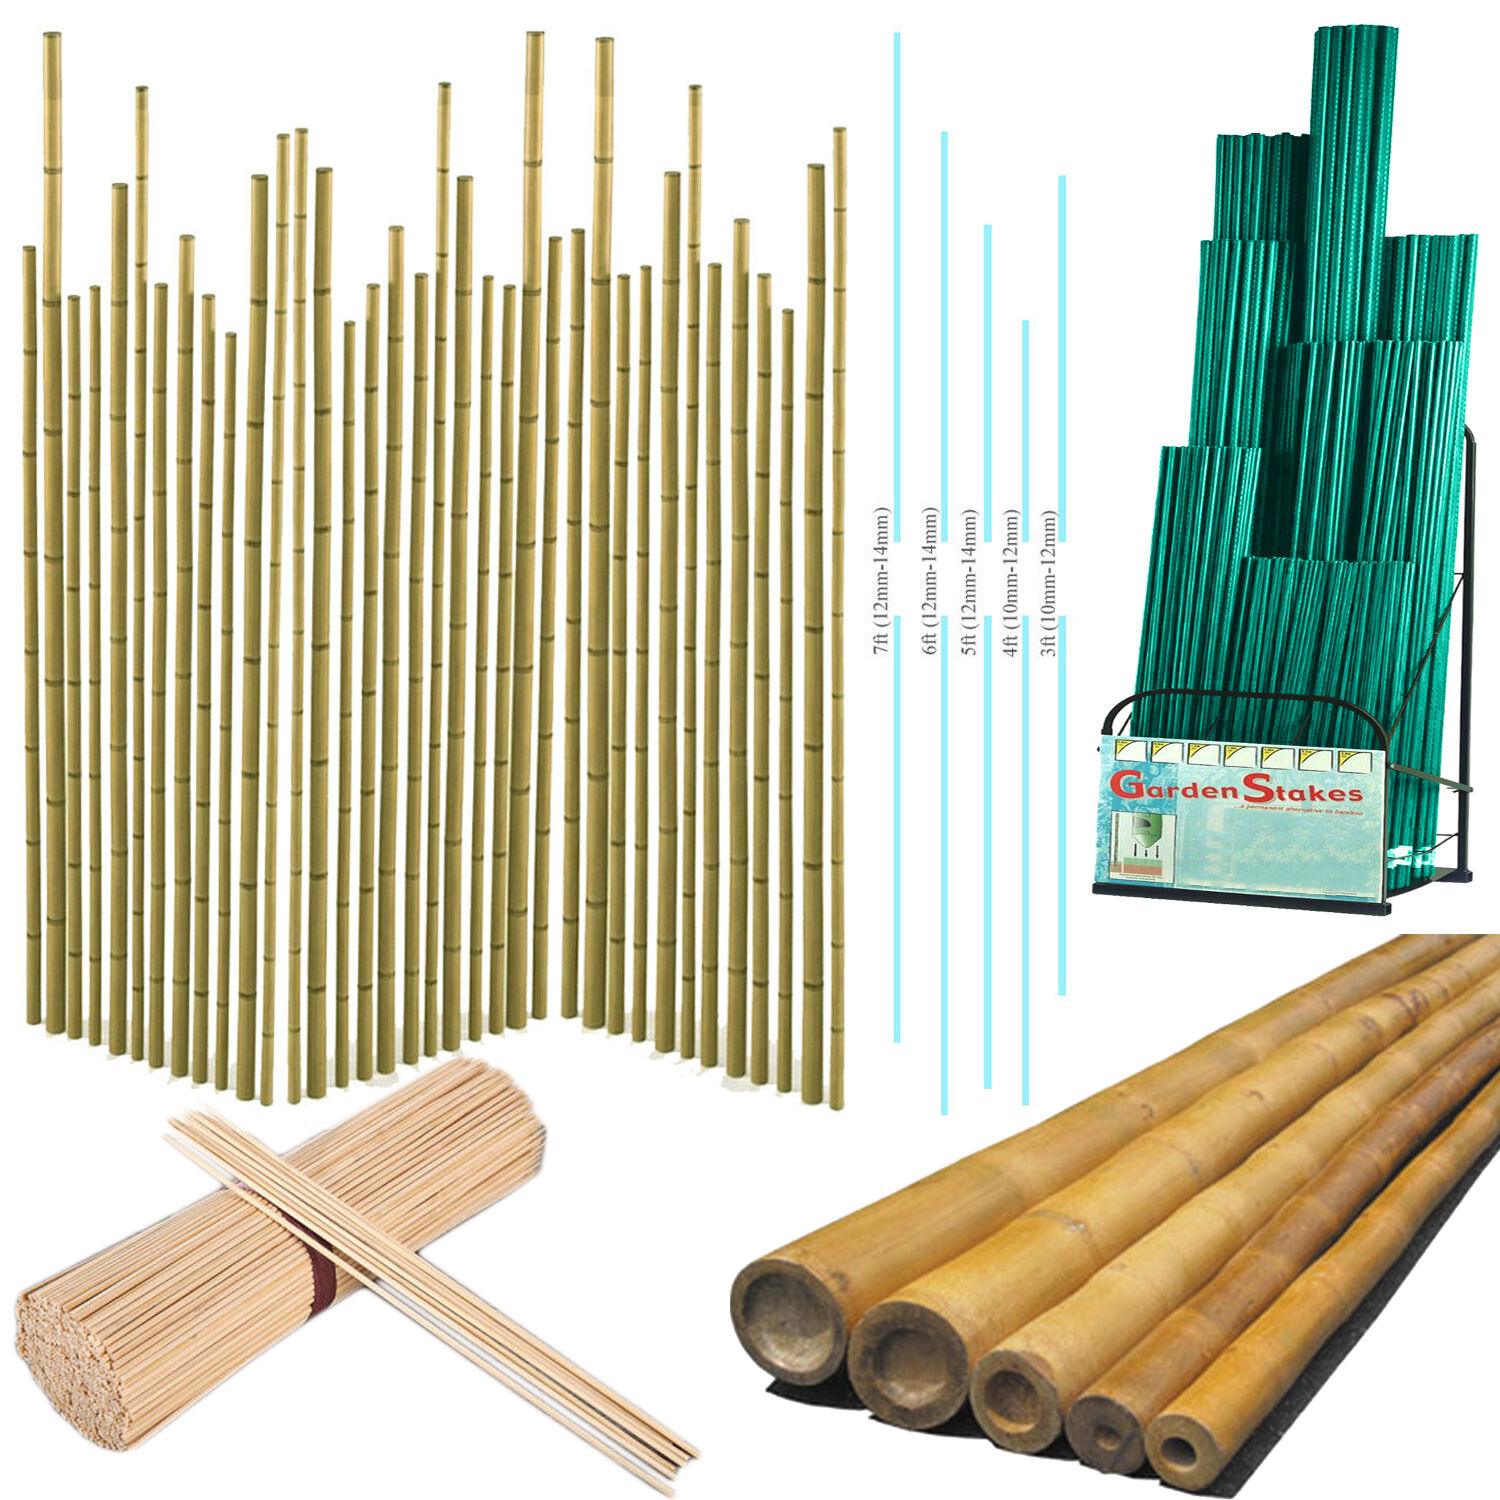 Raised Beds & Support Structures Elixir Gardens 3ft Extra Strong Heavy Duty Professional Bamboo Plant Support Garden Canes x 40